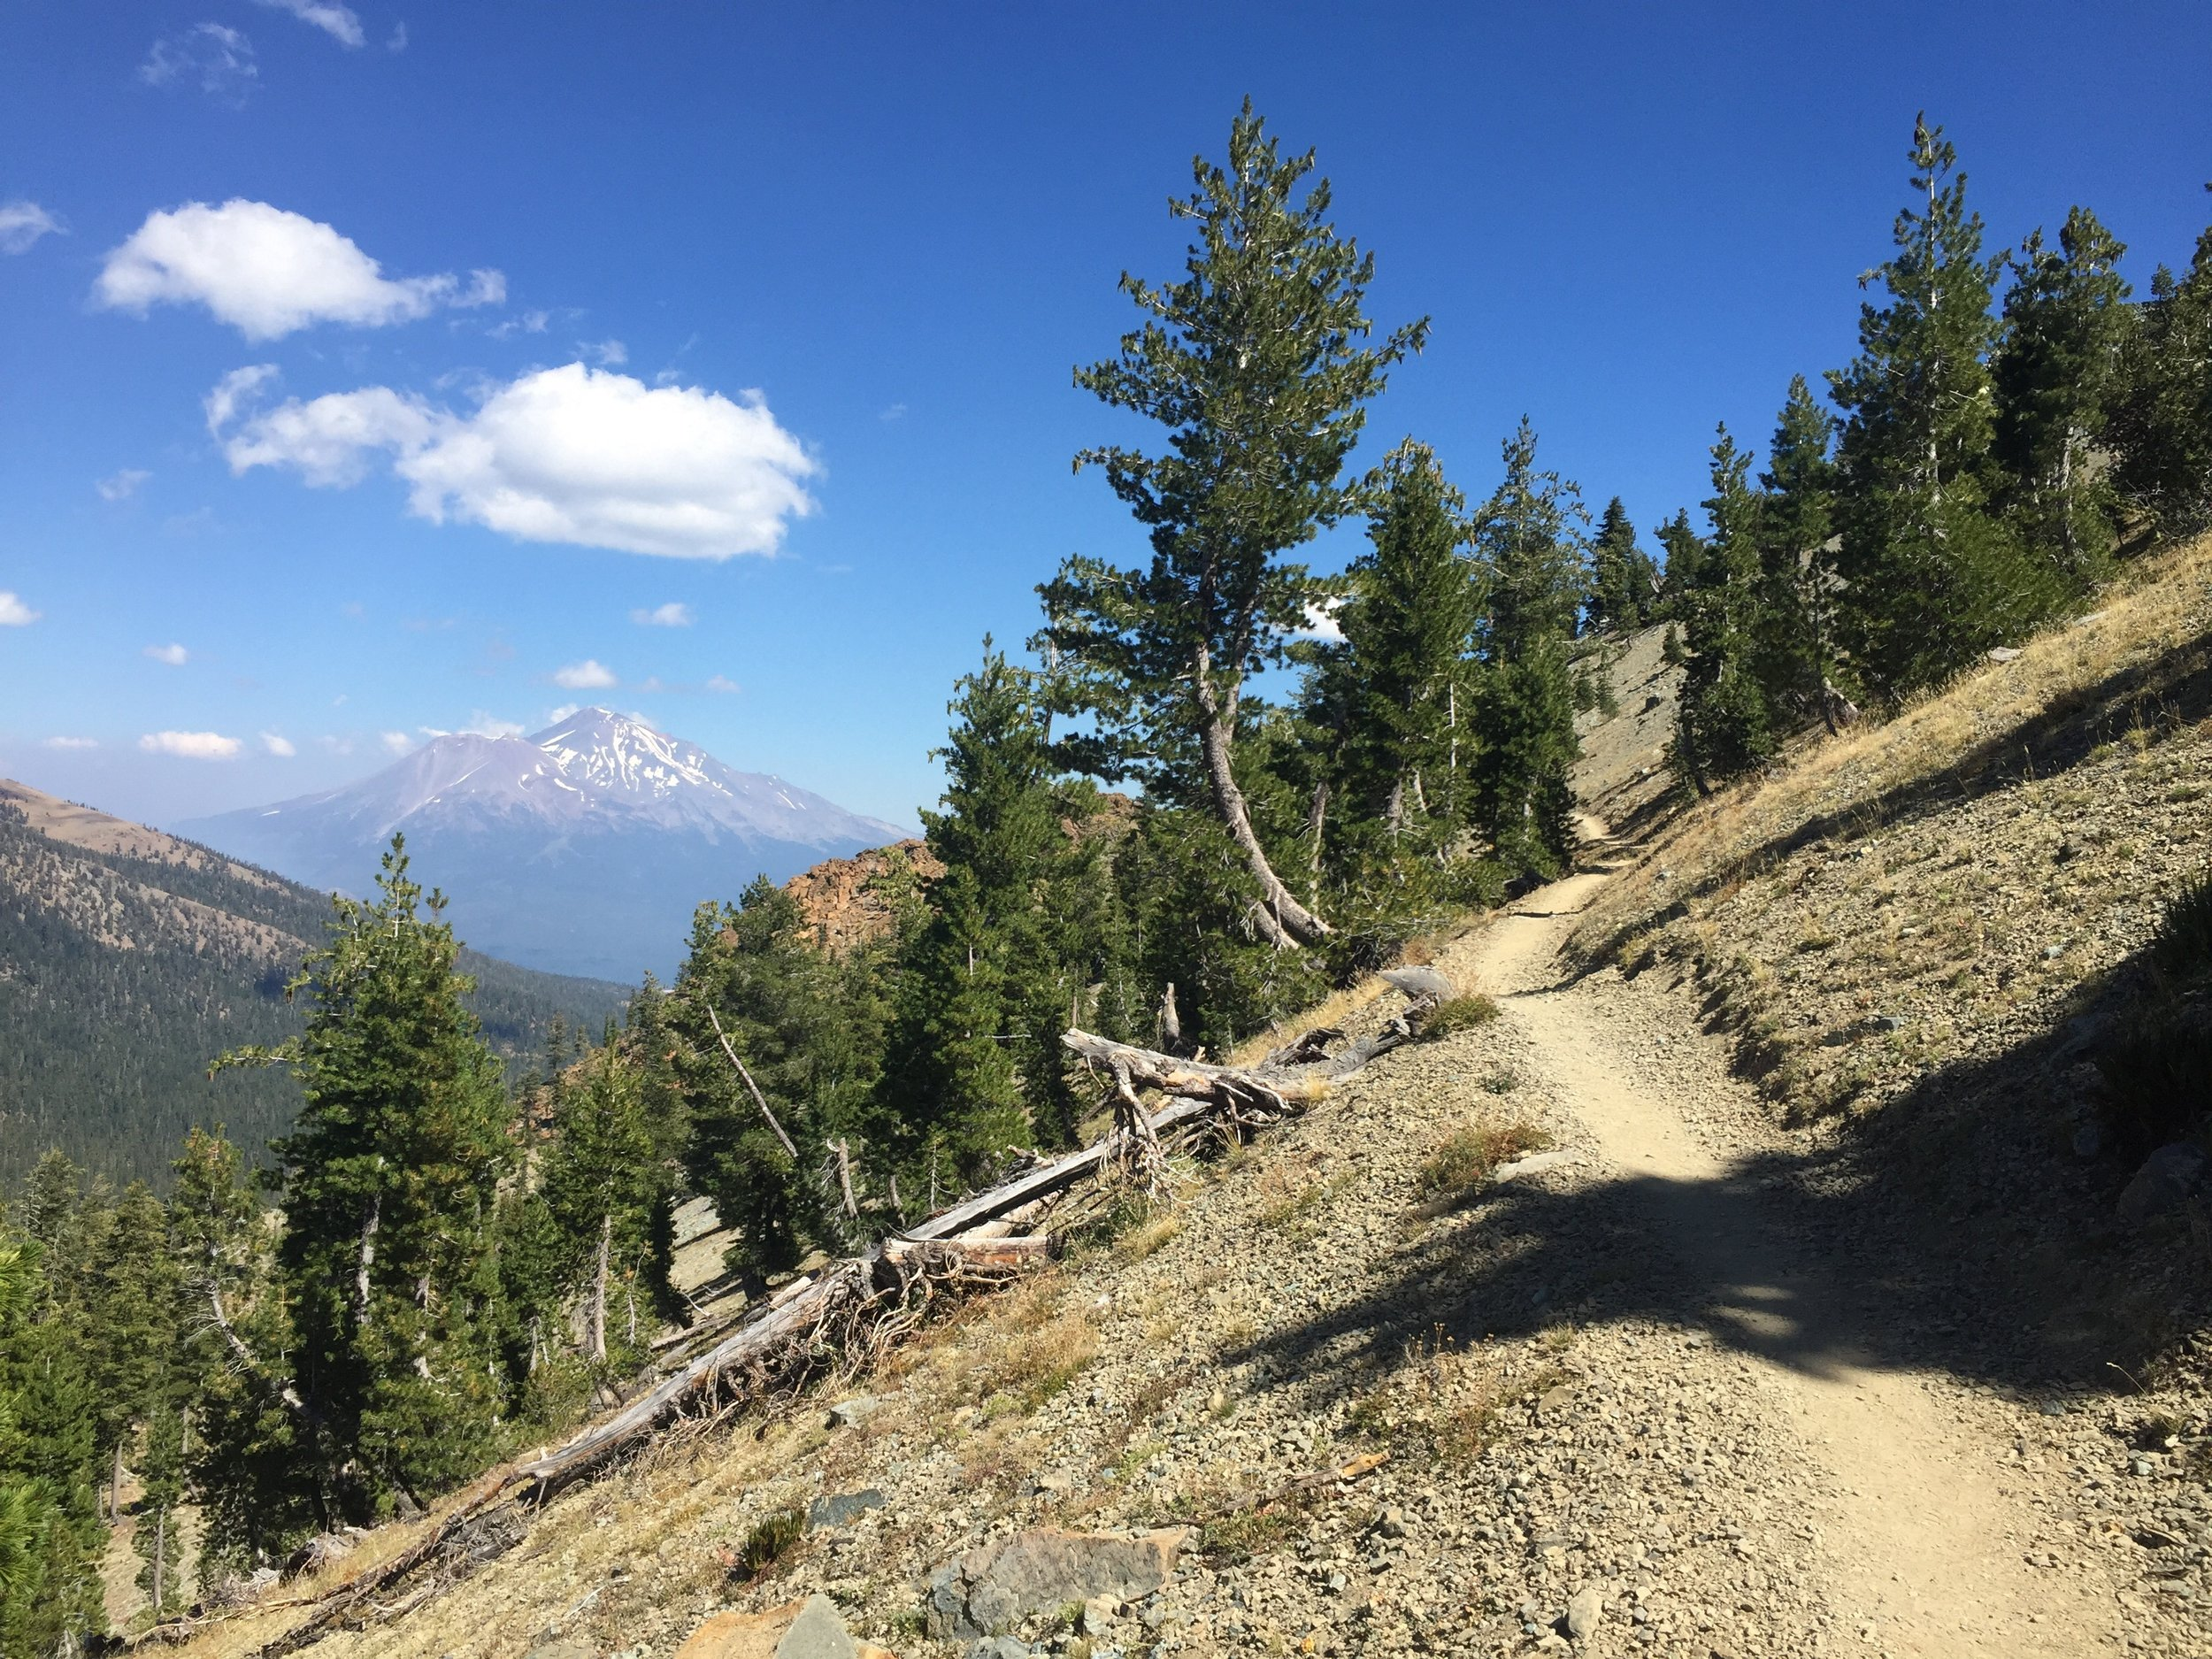 Mt. Shasta dominates the views from this high basin whose slopes are dotted by northern Foxtail and Whitebark pines